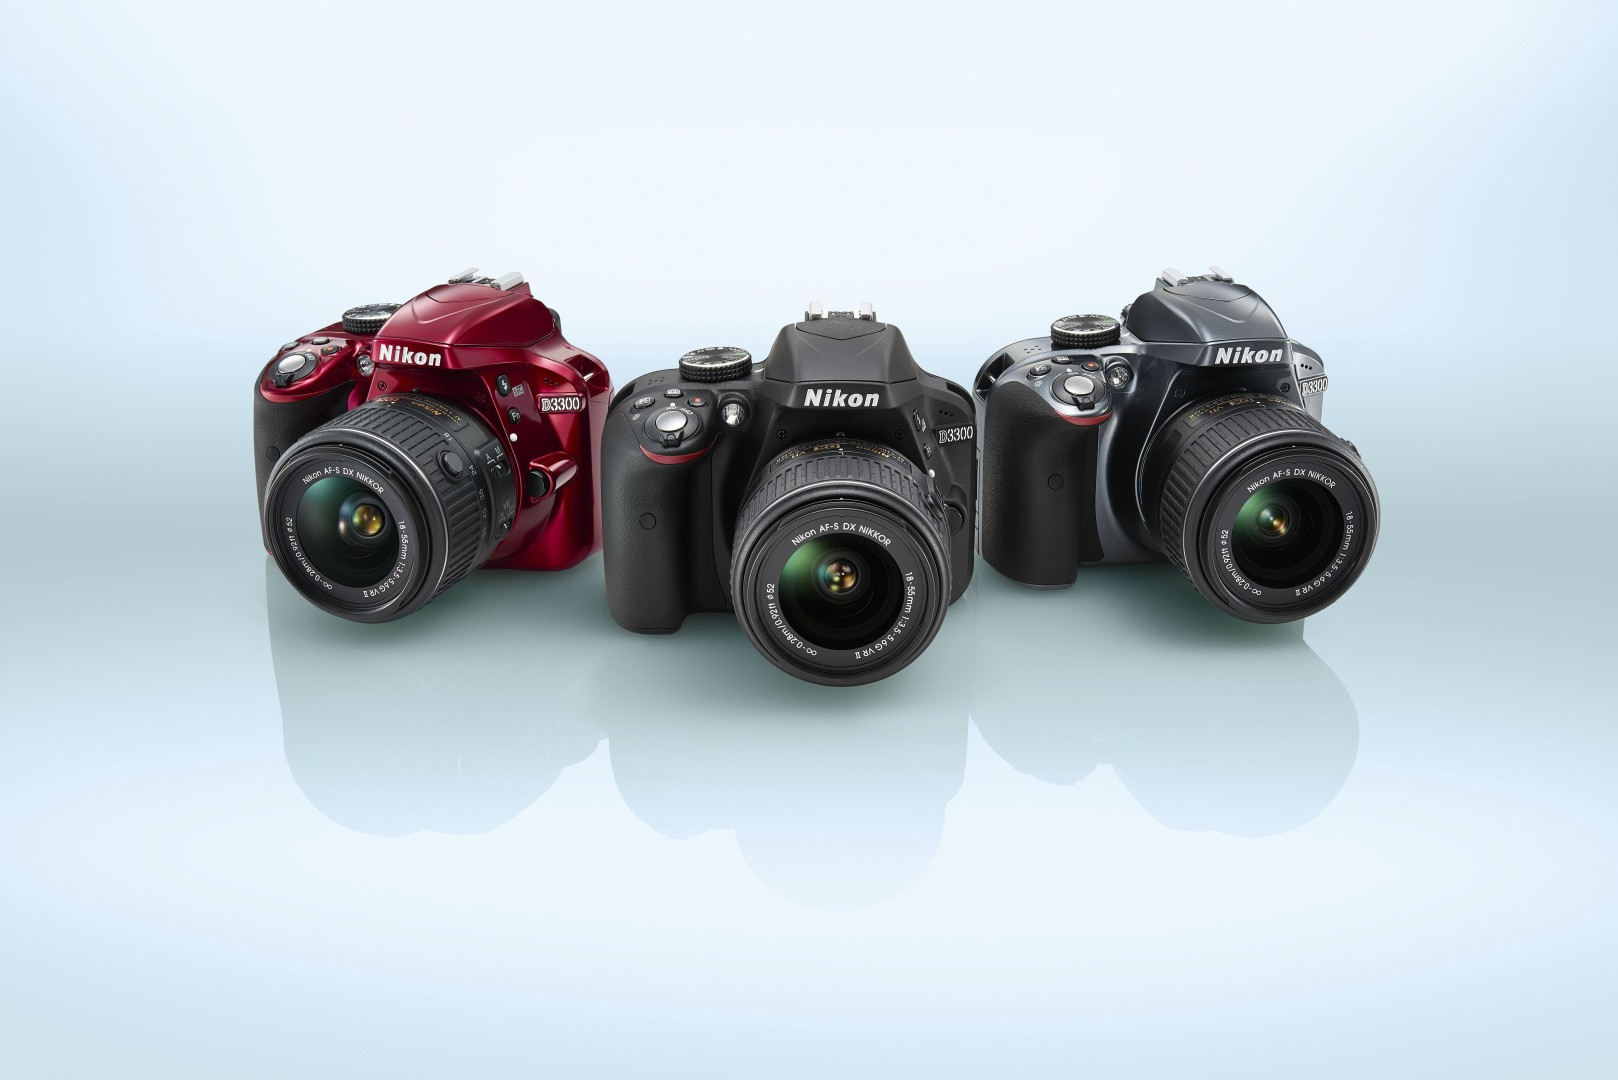 CES-2014-Nikon-D3300-with-18-55mm-f-3-5-5-6G-VR-II-Lens-Kit-Officially-Announced-414345-2